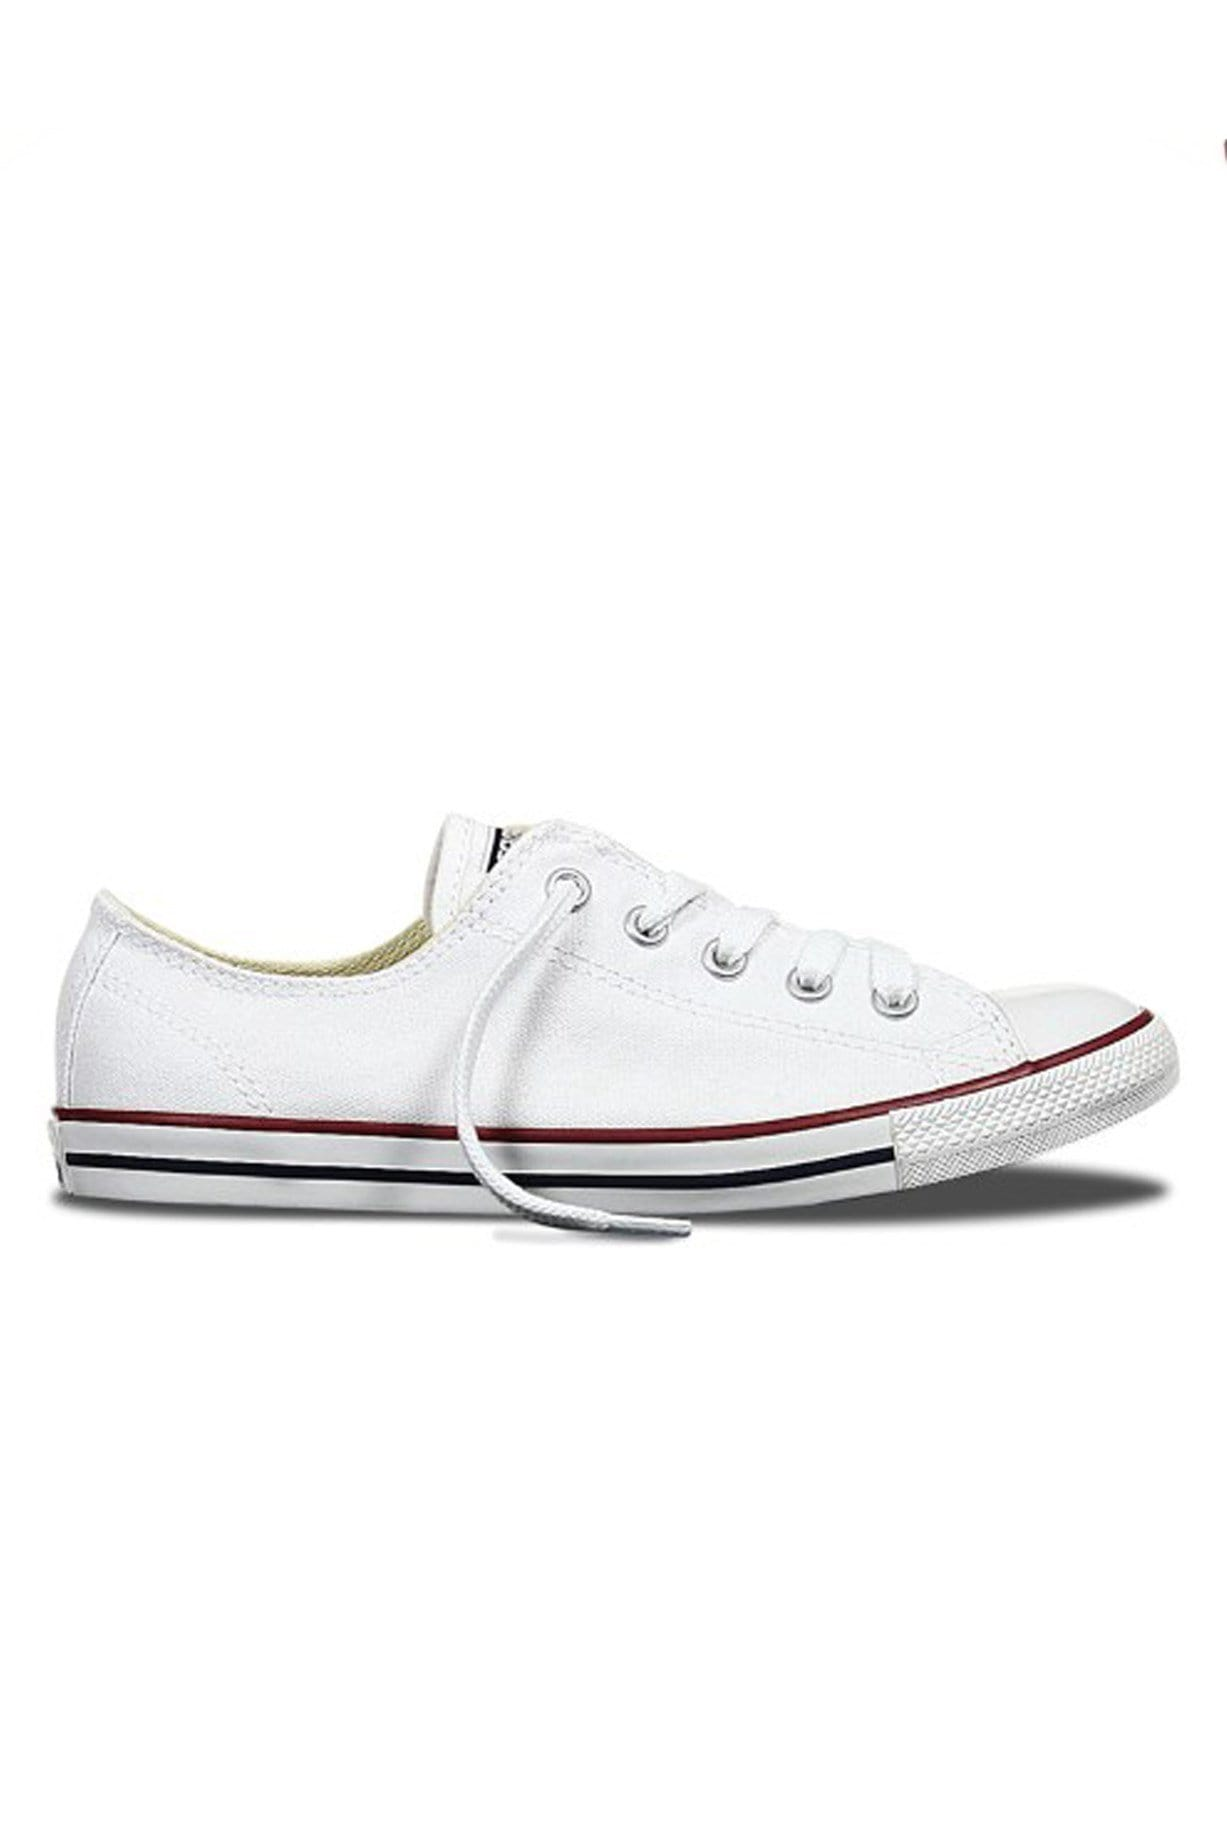 Chuck Taylor Dainty Lo White